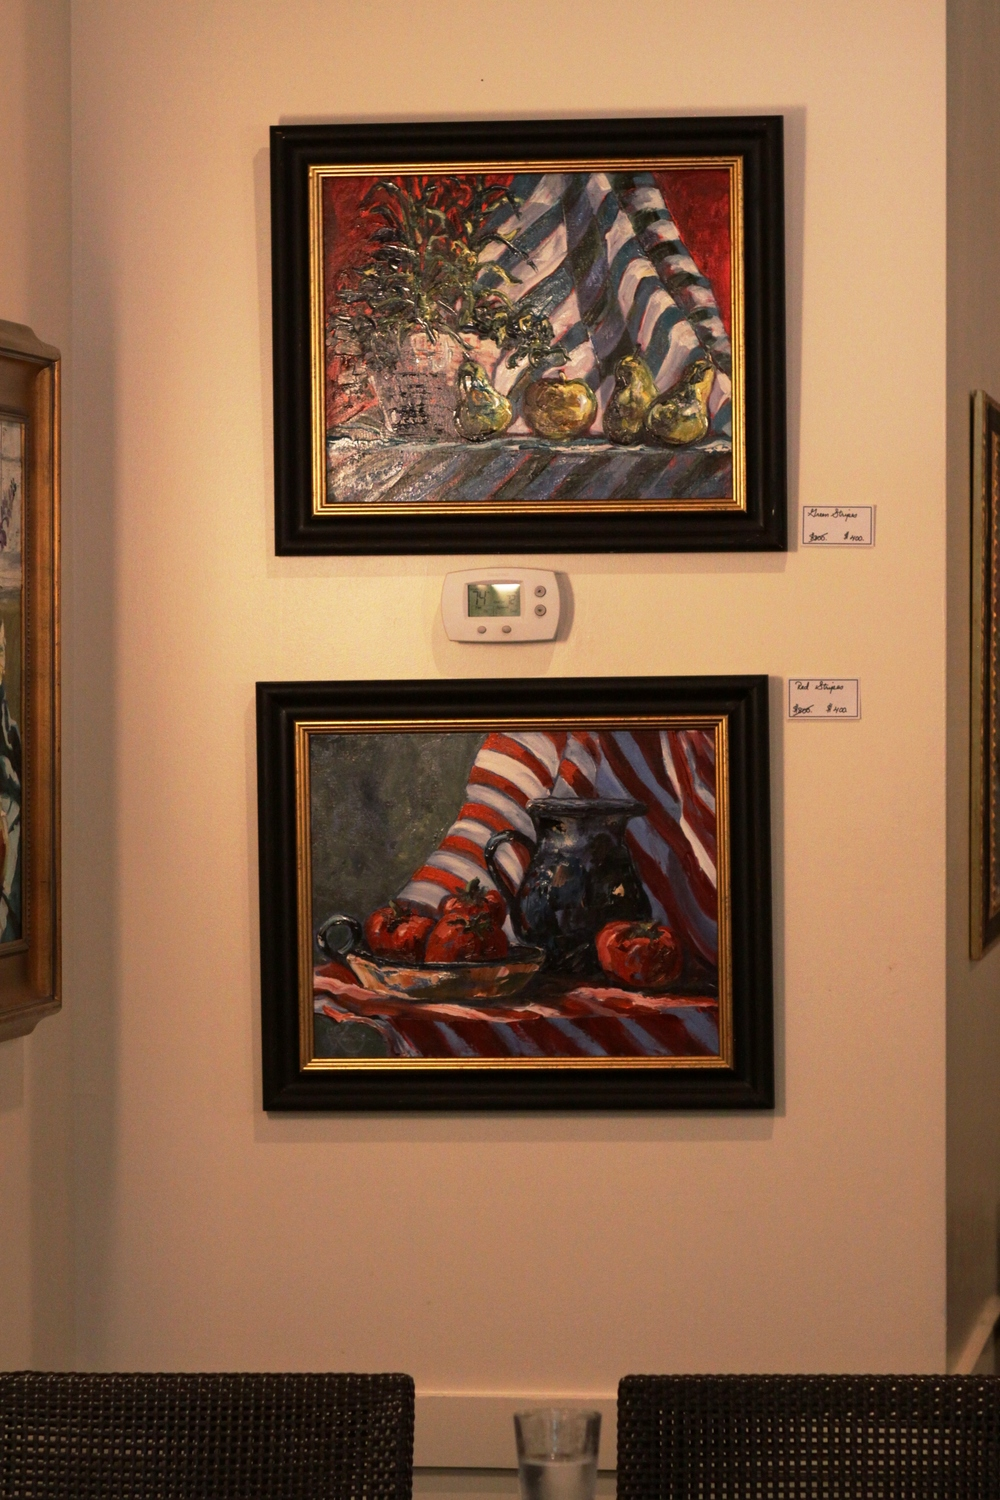 Connie Logan's work can be found throughout the current gallery.